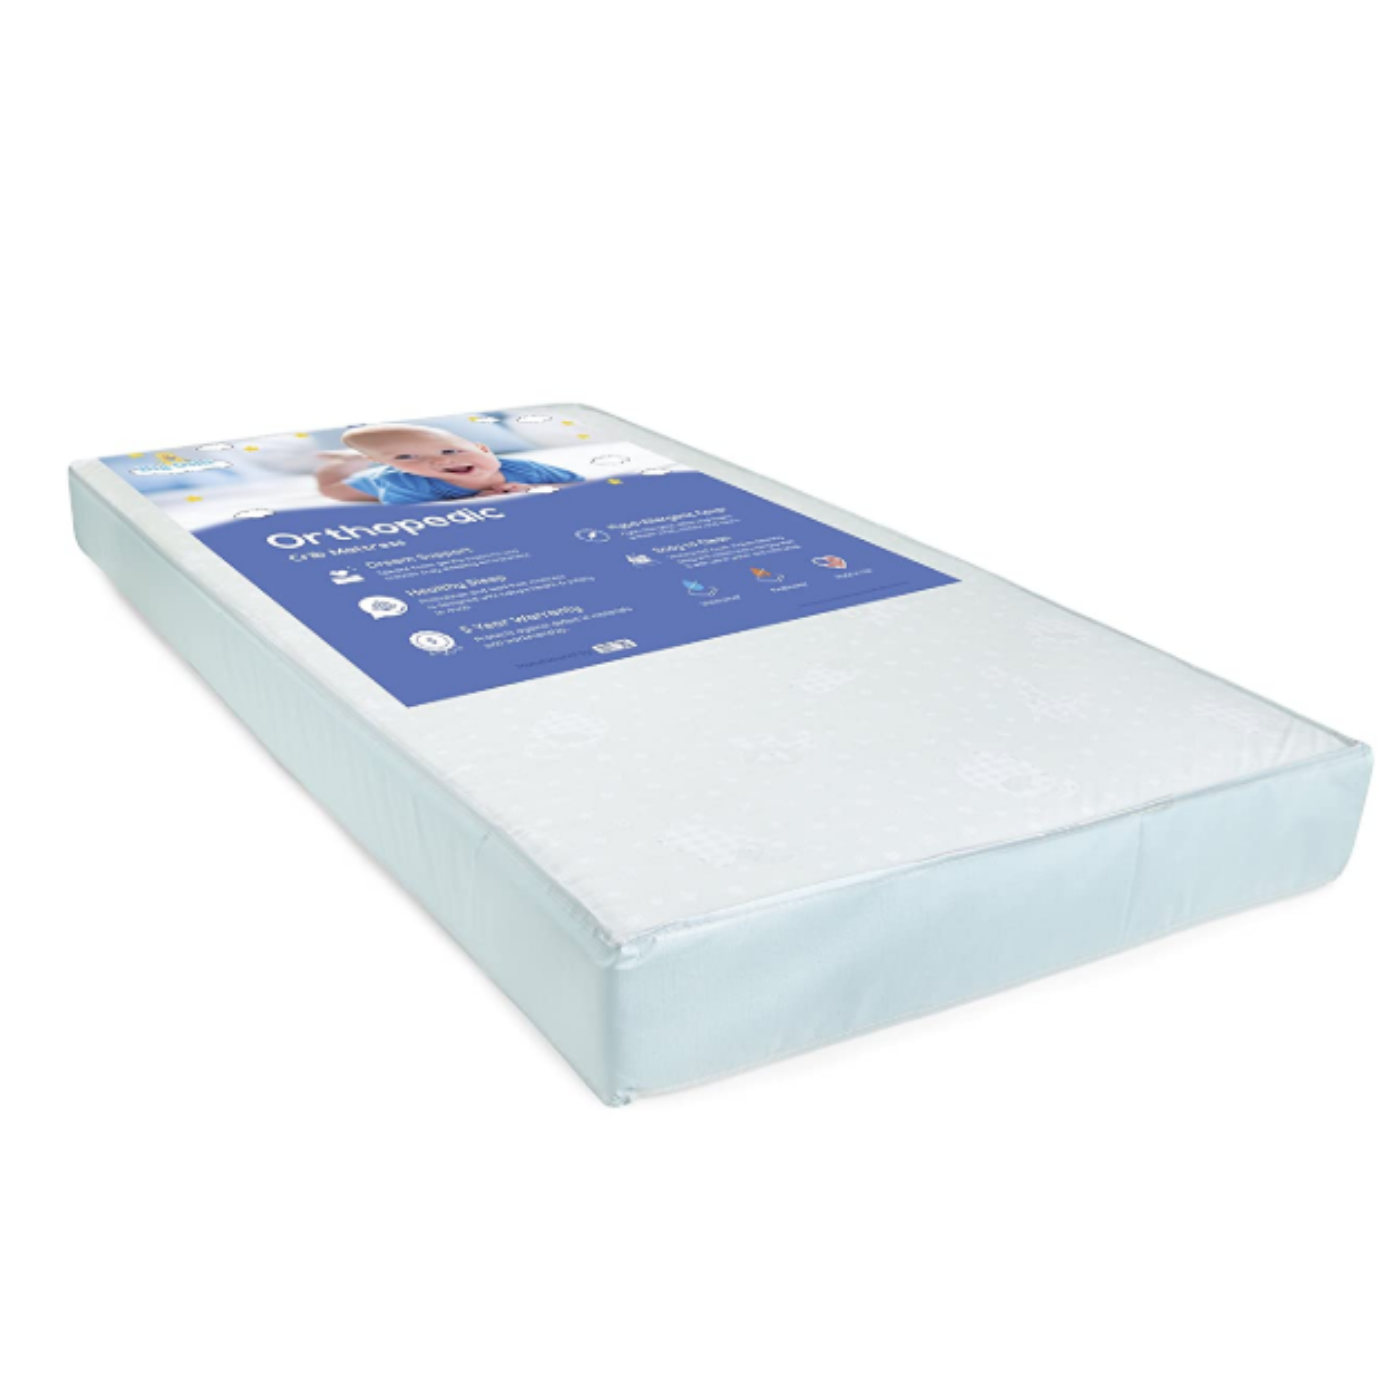 "Baby Foam Crib  Mattress 5"" Thick - Waterproof Cover"